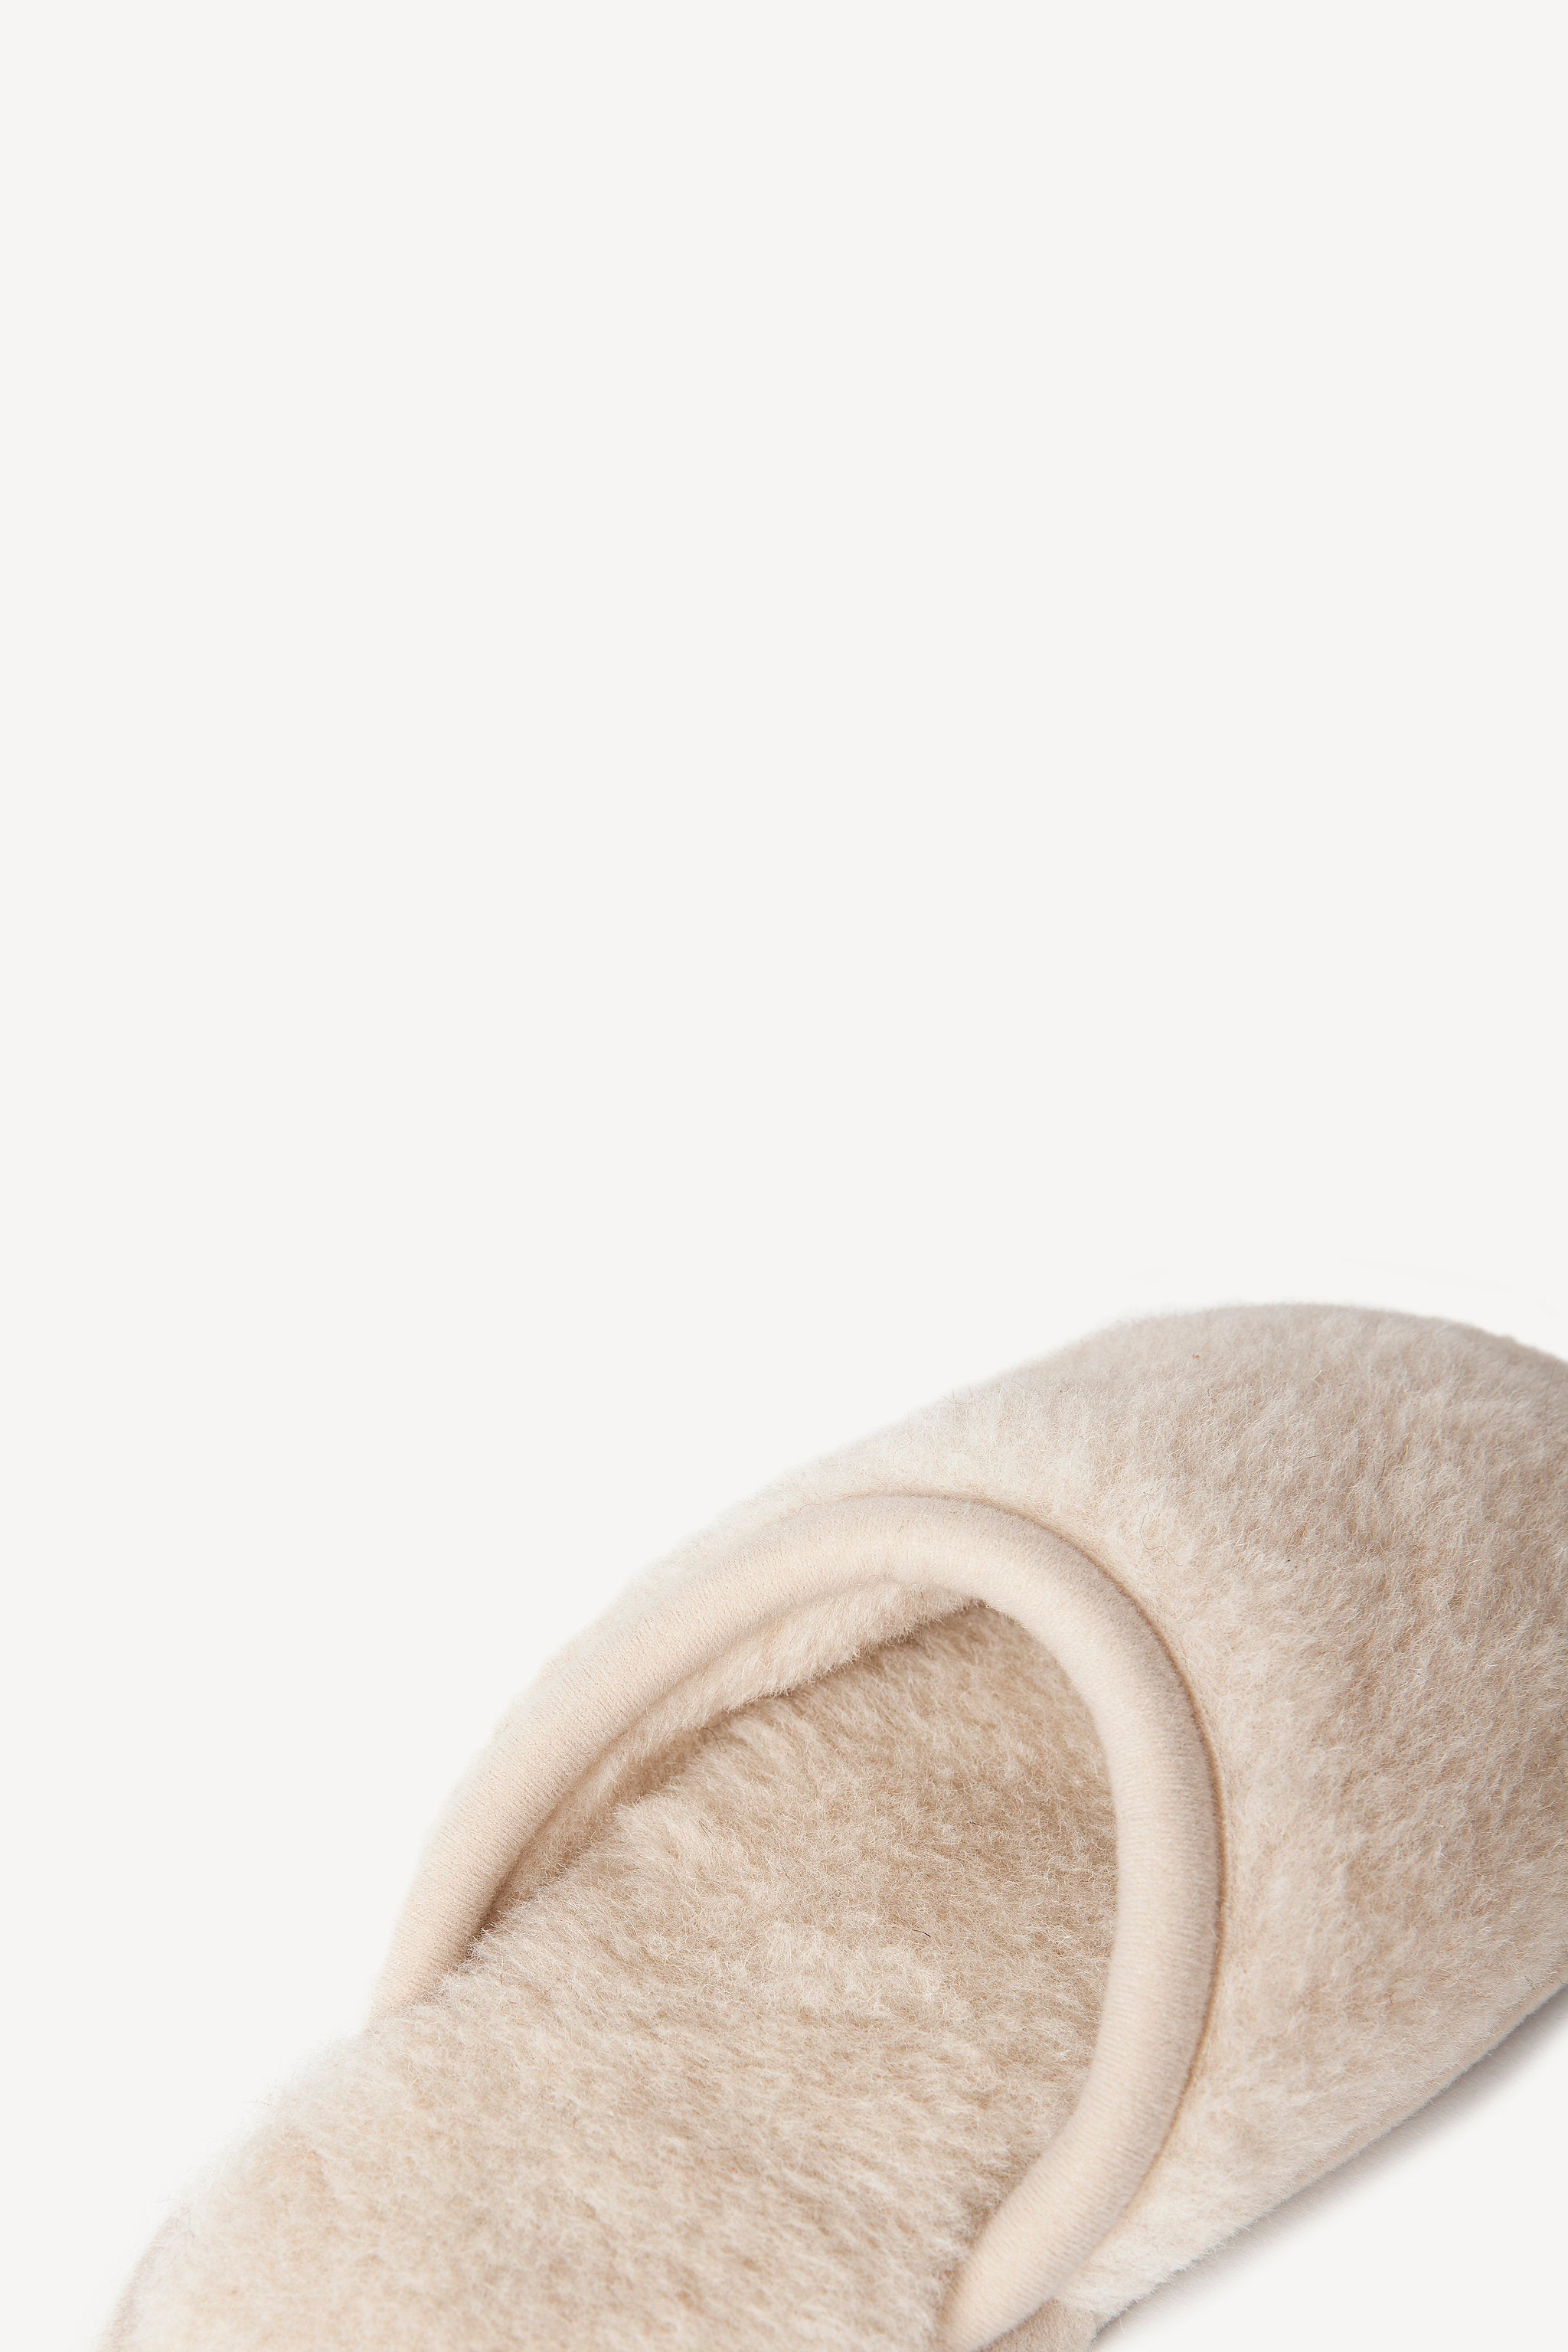 6994fce164b8 Hygge House Slippers - Natural - Hygge Life